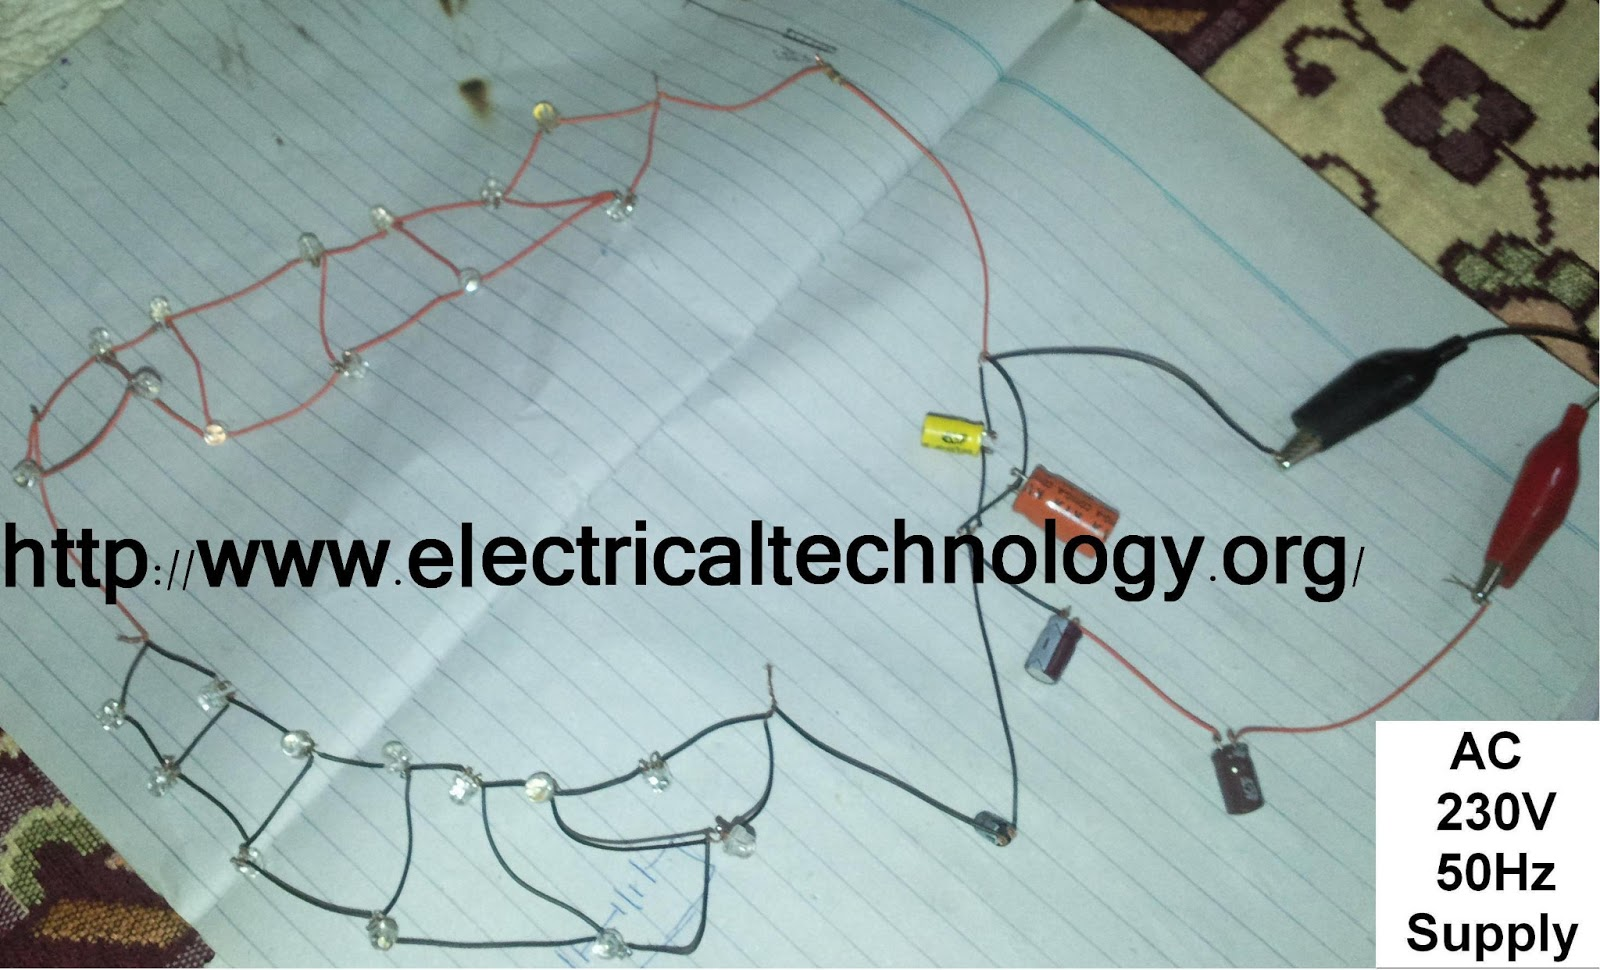 The Circuit Is Designed To Produce A Dice That Can Be Operated